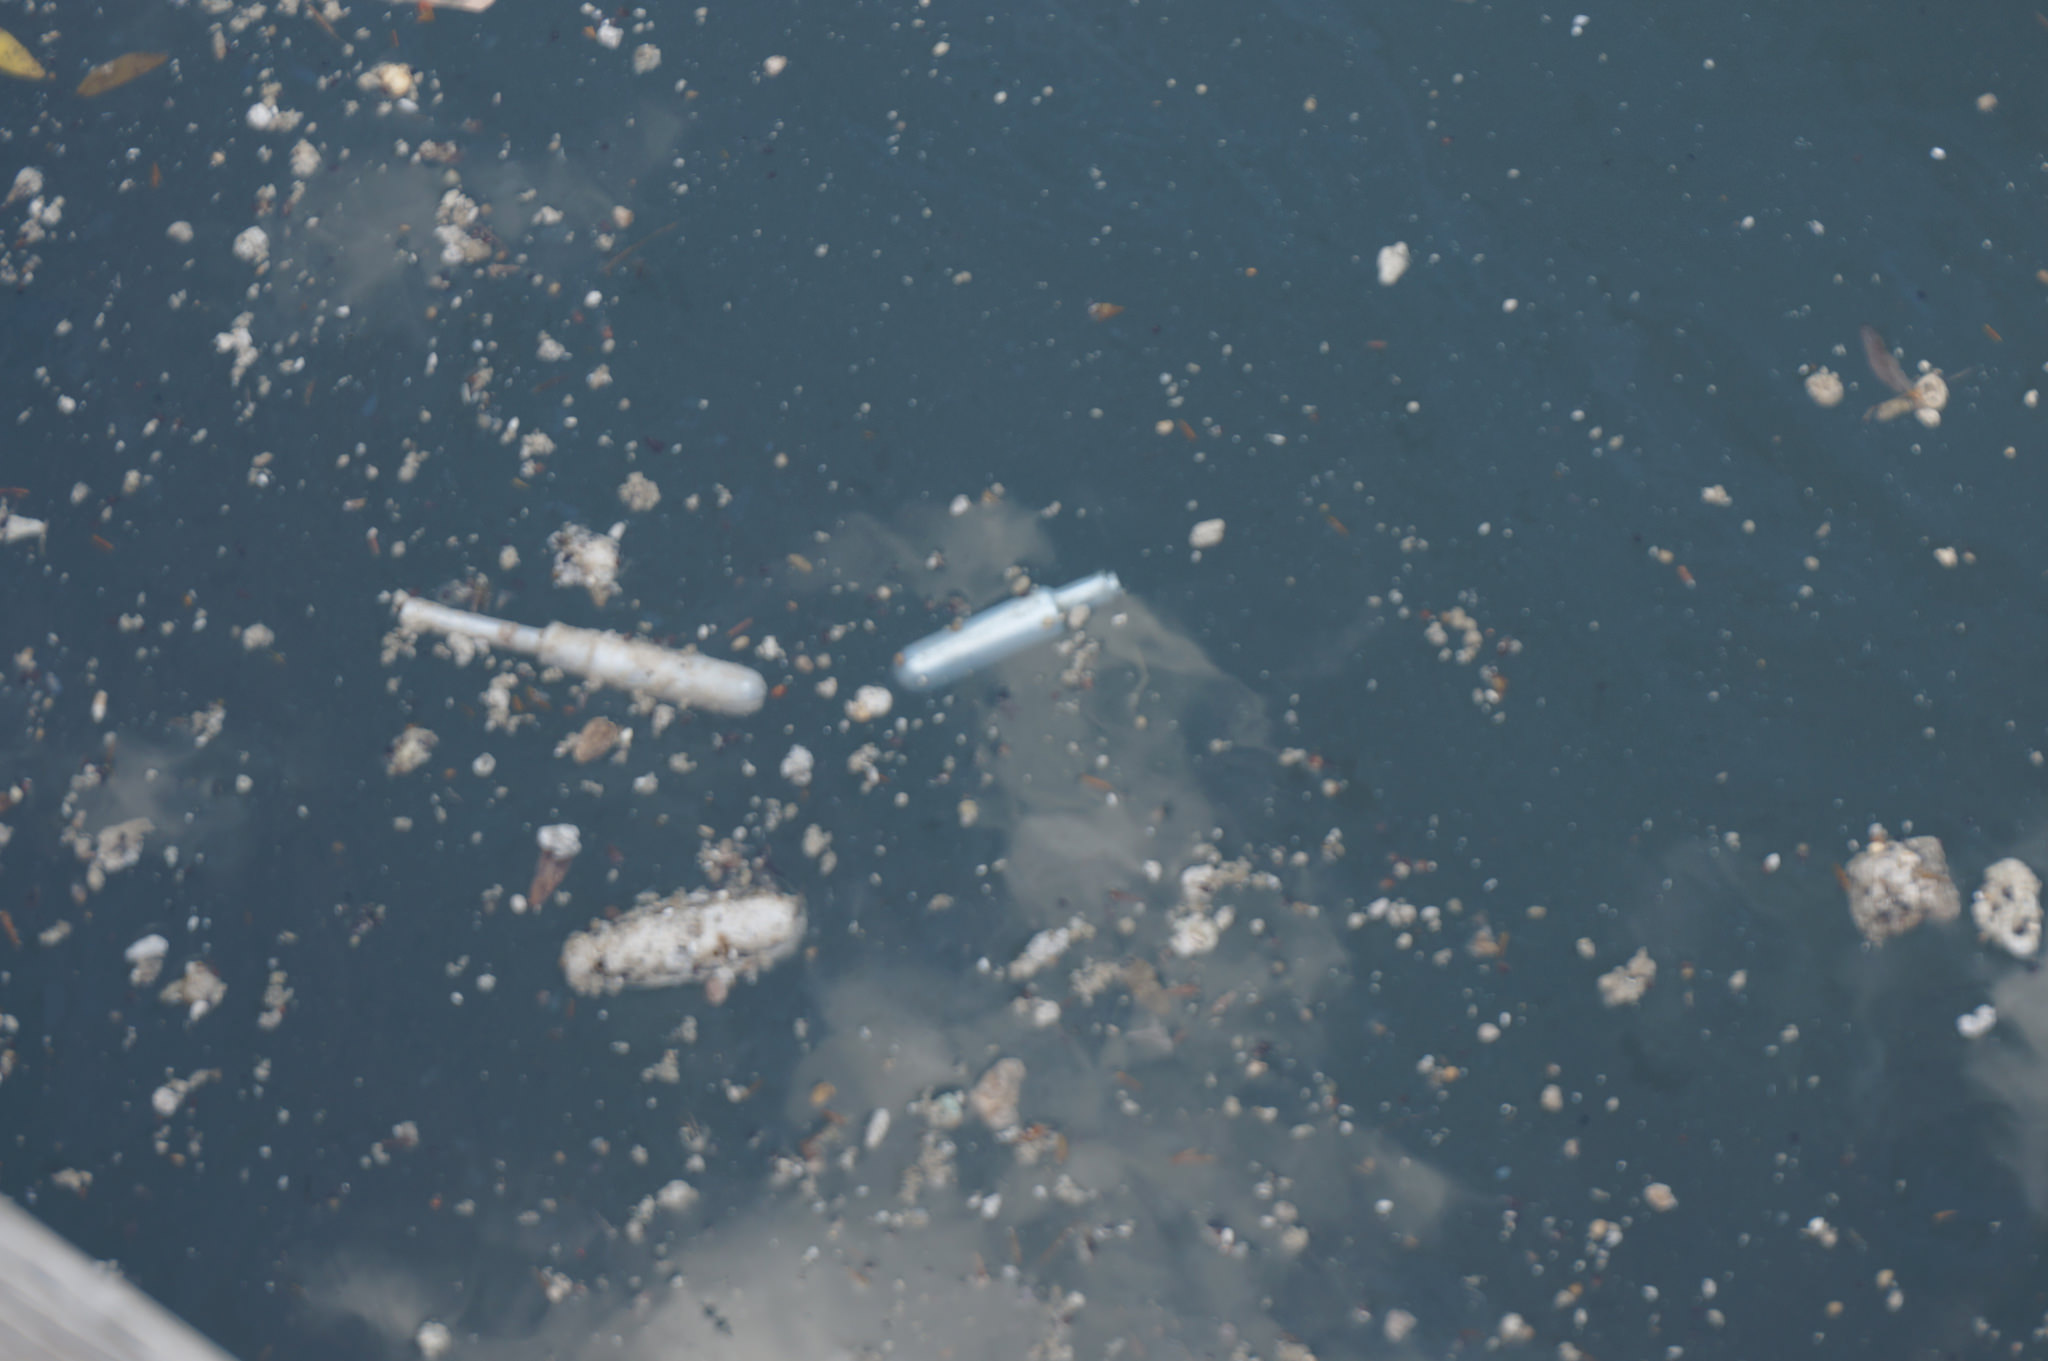 Tampon applicators and a tampon amongst floating debris. (Image by Lake Ontario Waterkeeper)